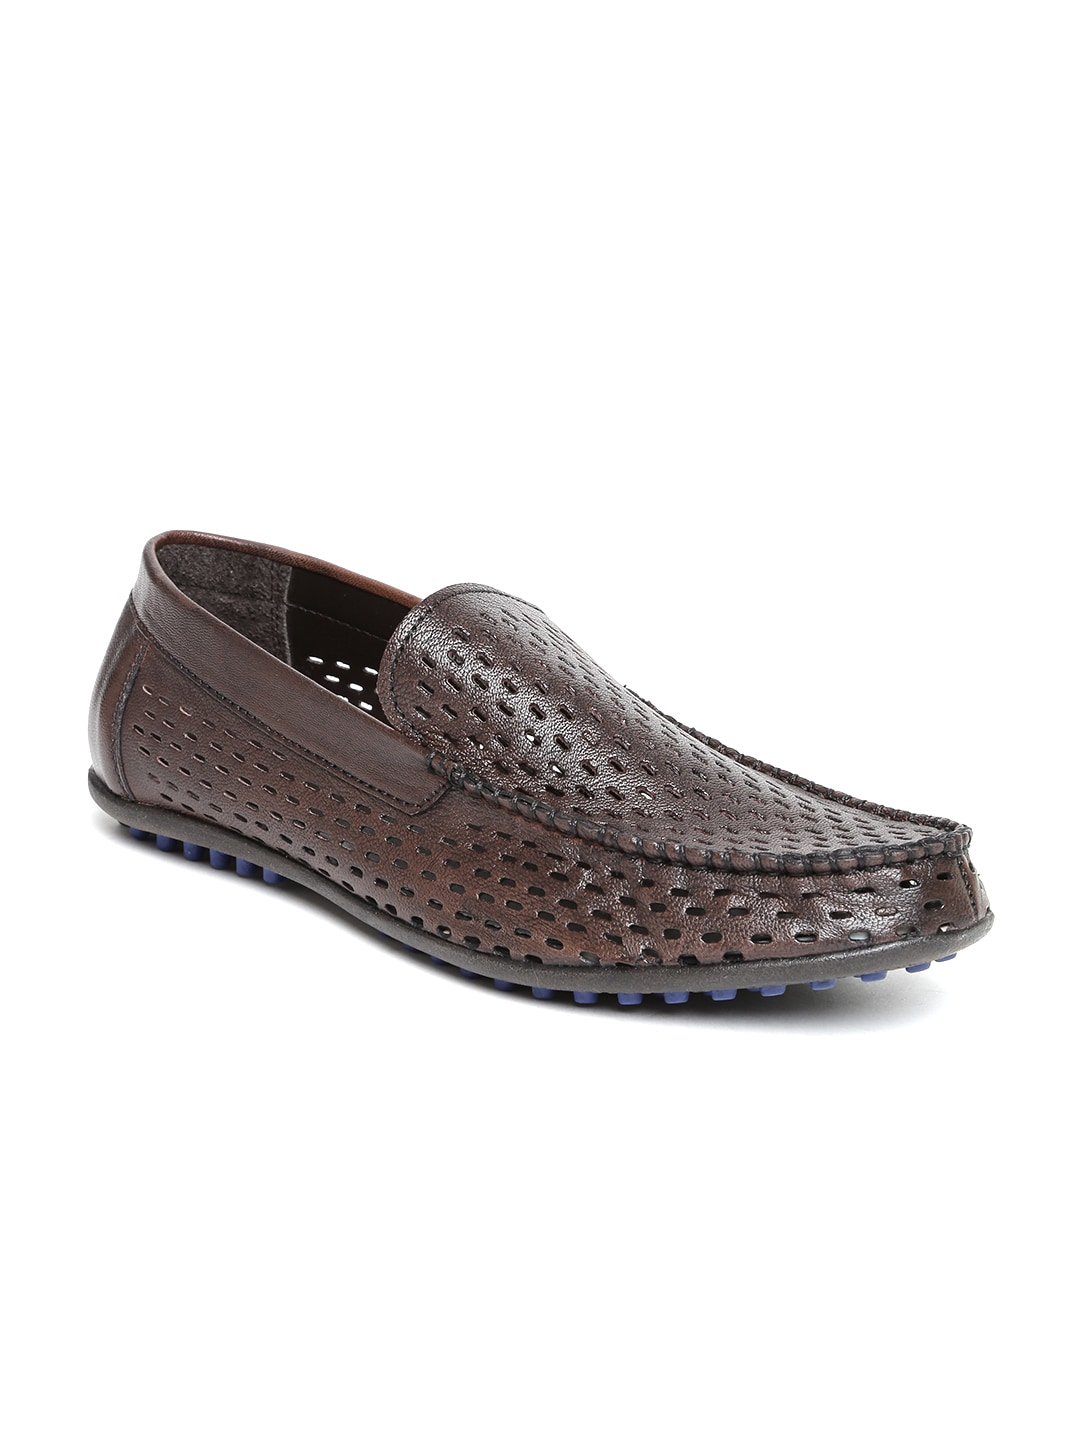 bata casual shoes at best price in india 13 15